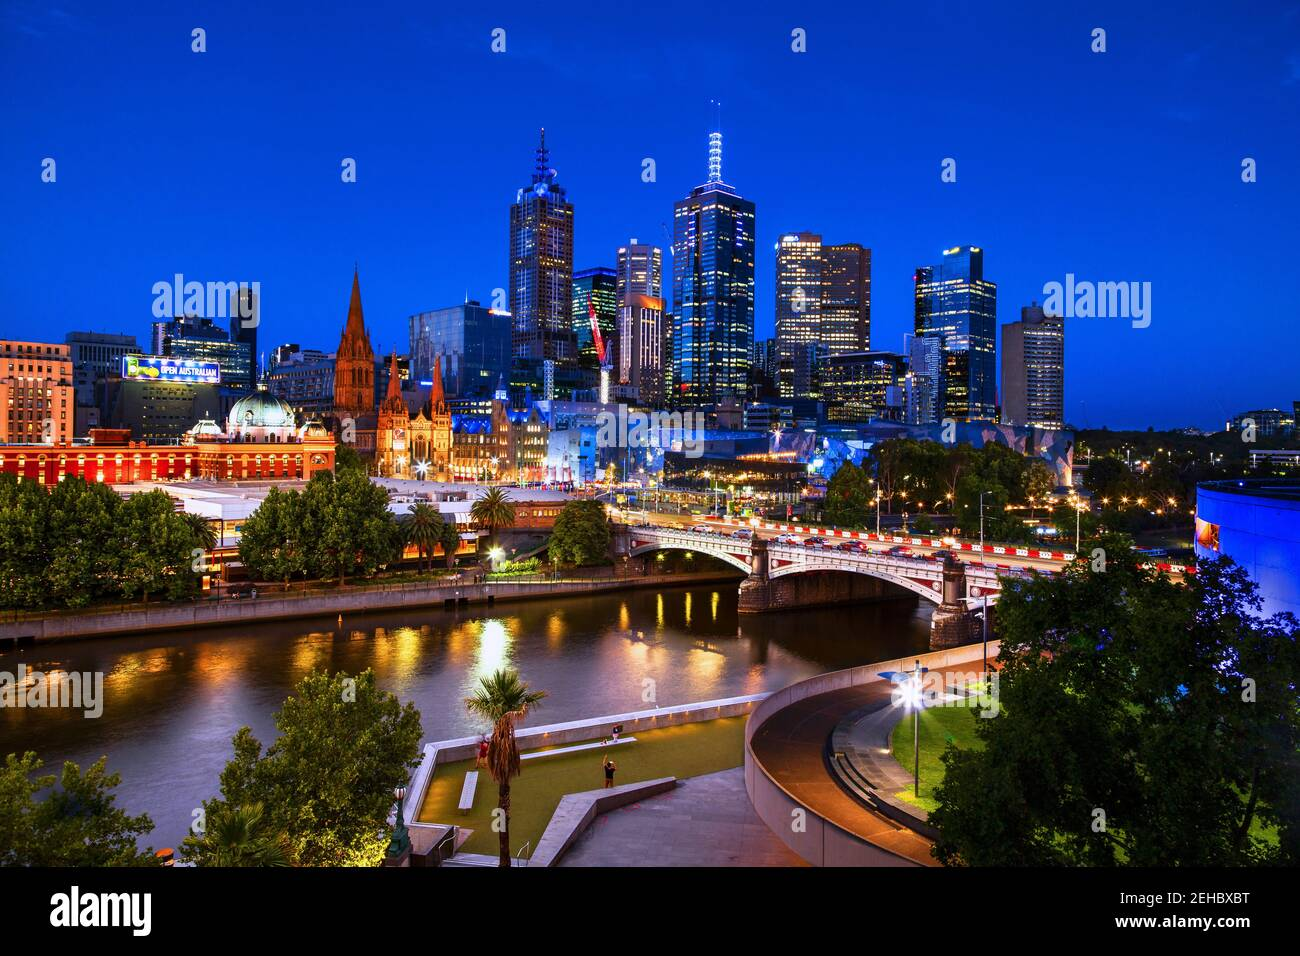 Melbourne, Australia skyline at night: Looking across the Yarra River to Princes Bridge and Federation Square. Stock Photo